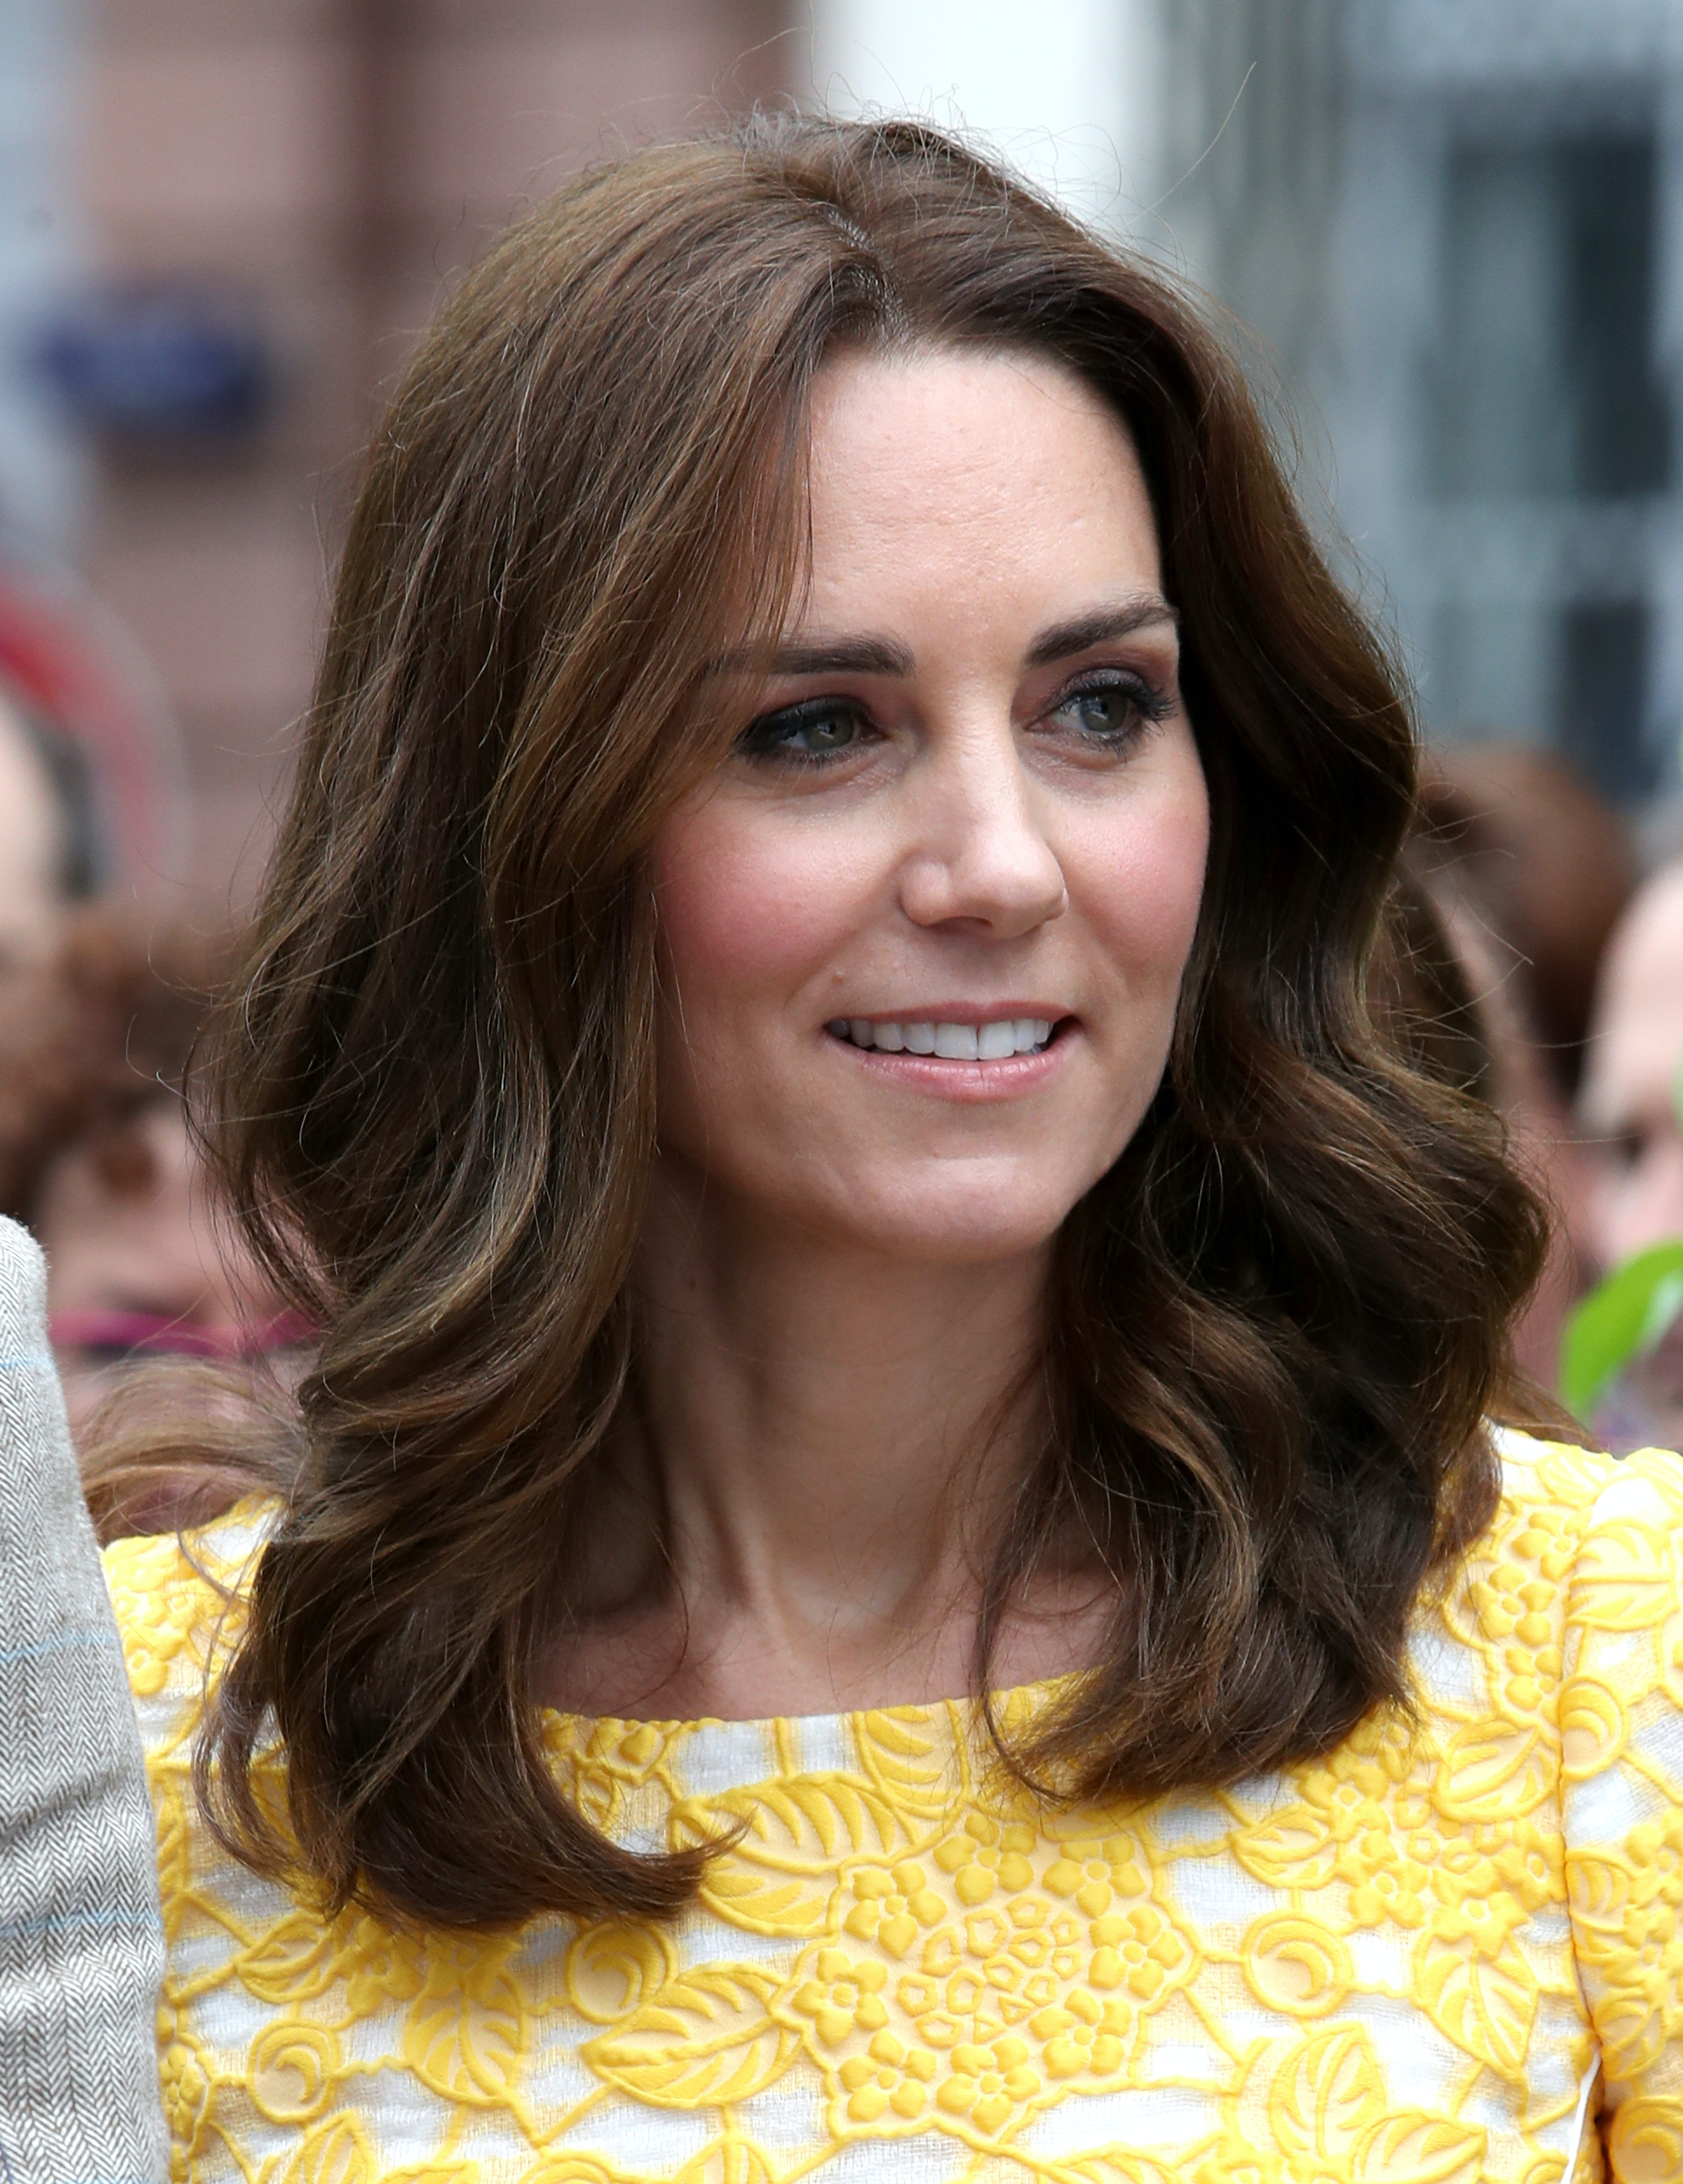 Kate Middleton Donated Her Hair To Charity Her Trademark Locks Are